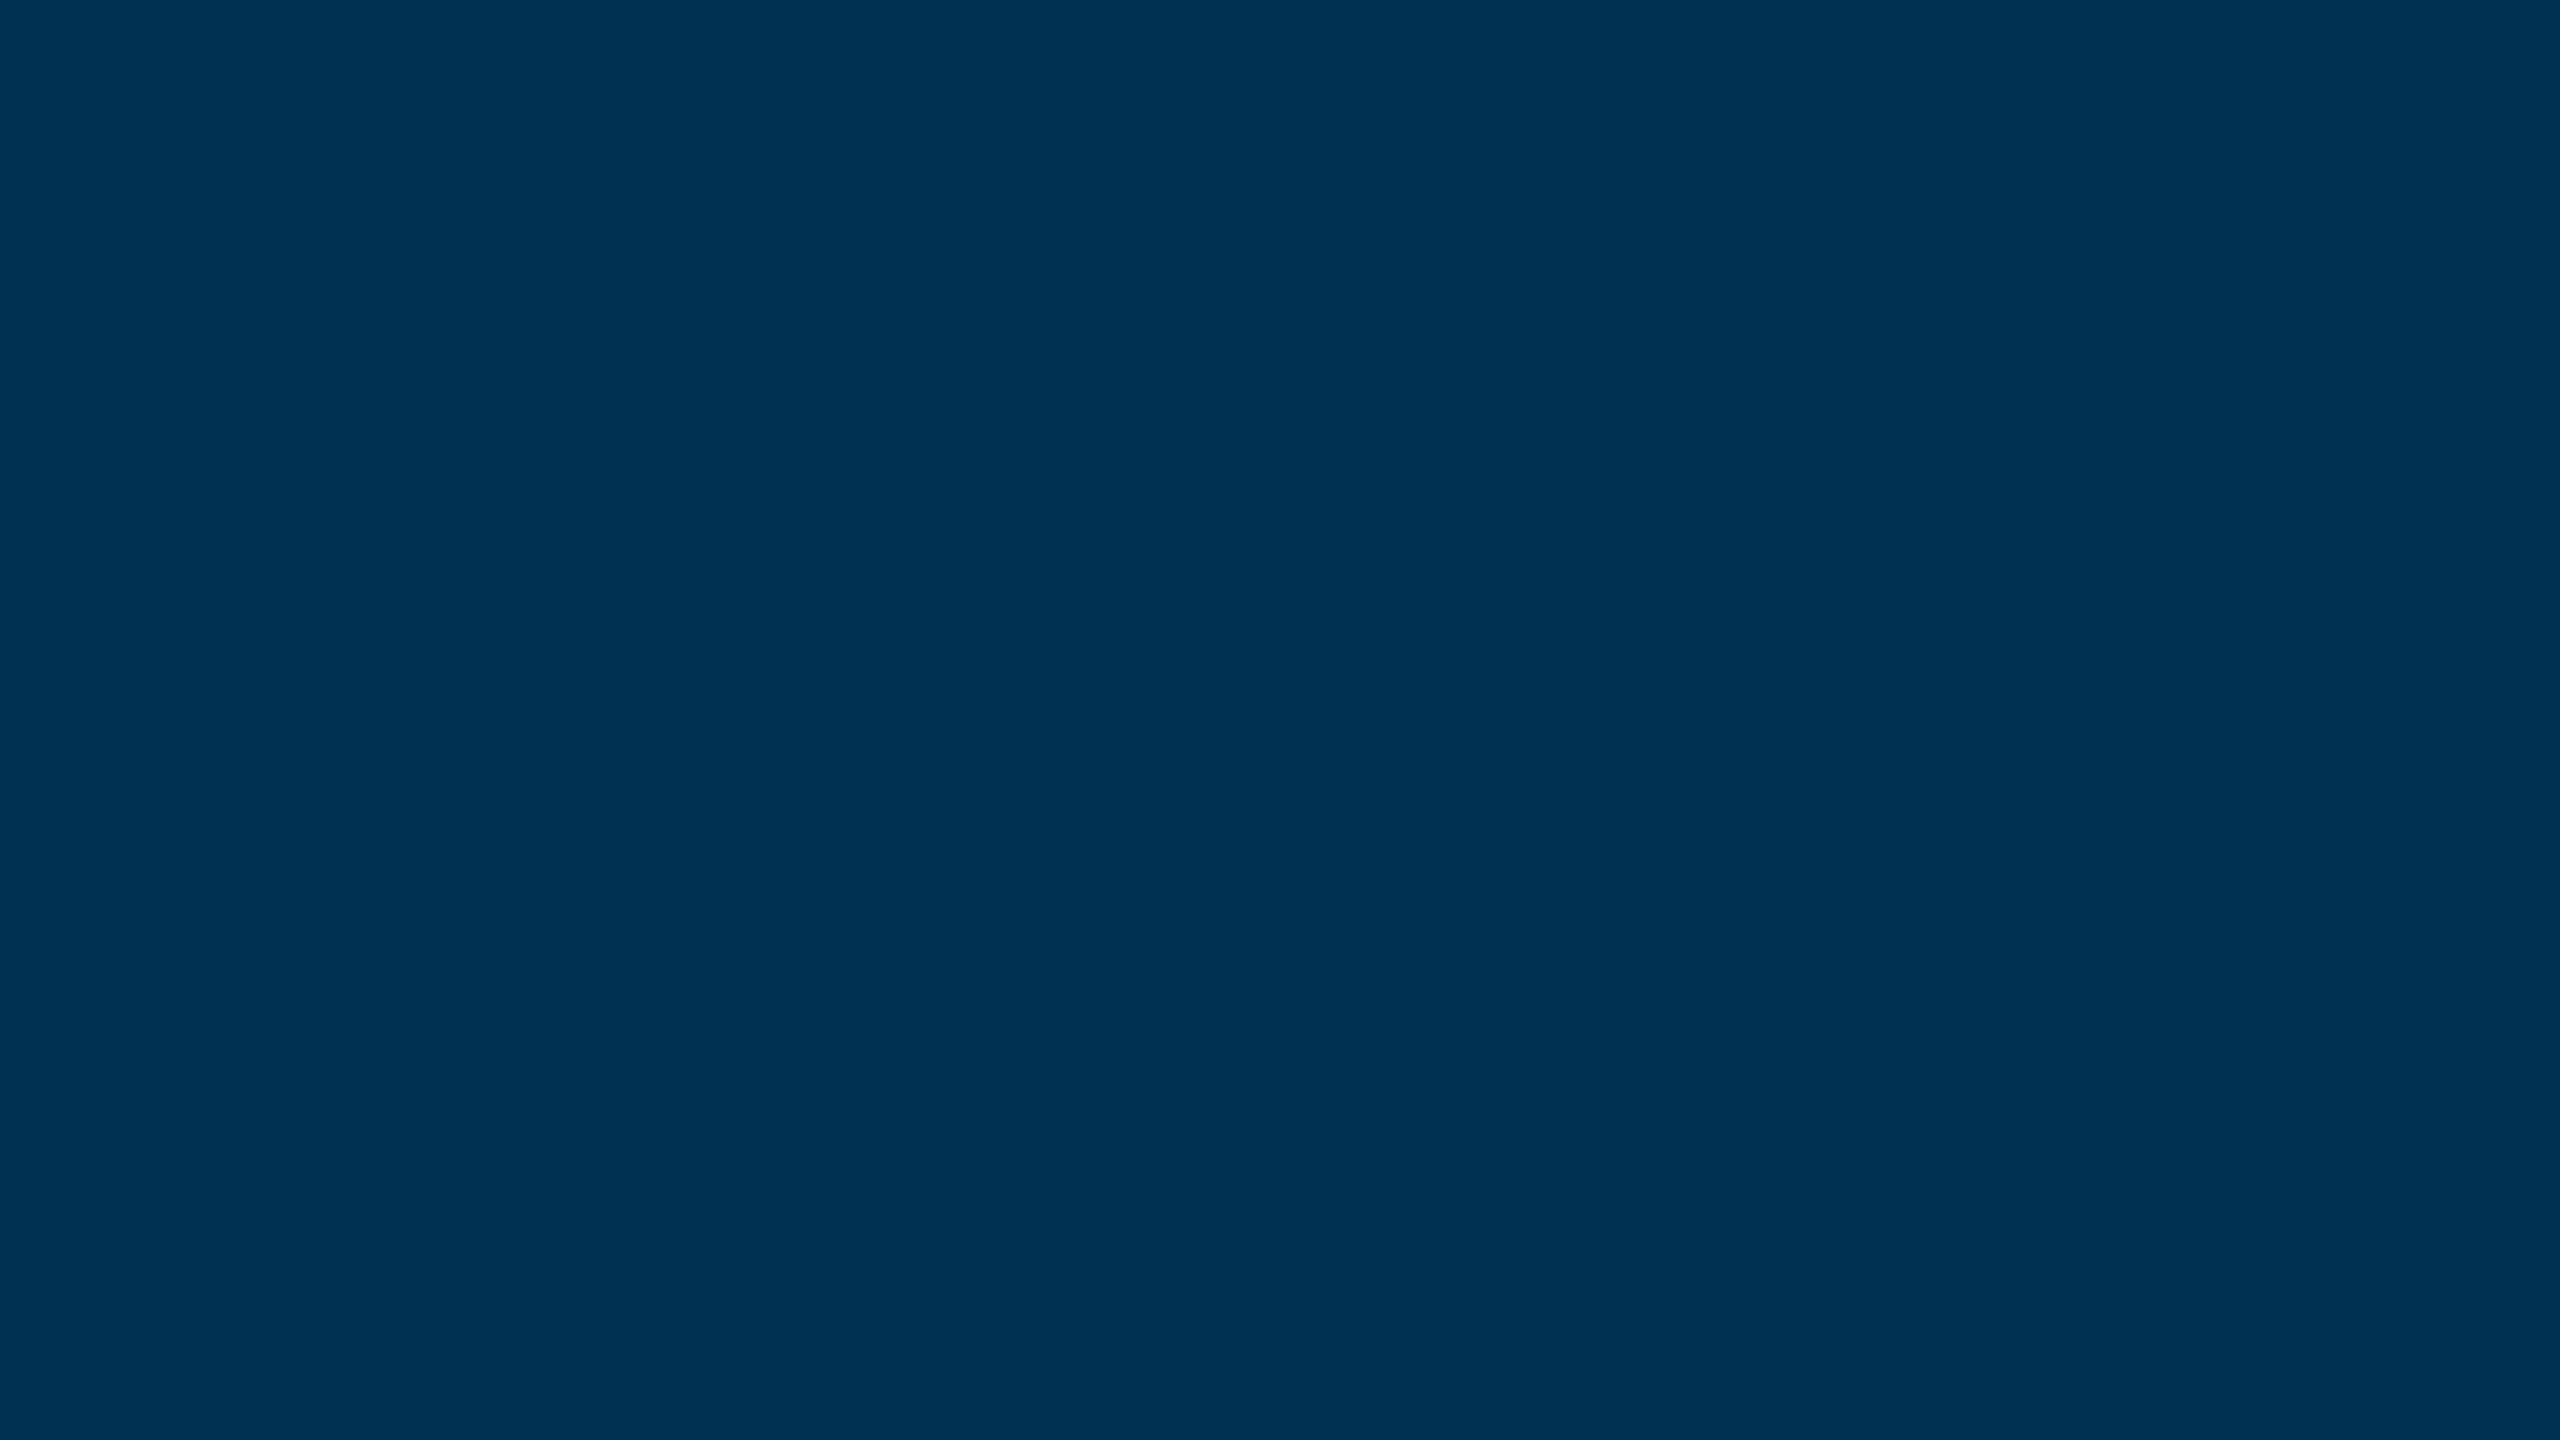 2560x1440 Prussian Blue Solid Color Background